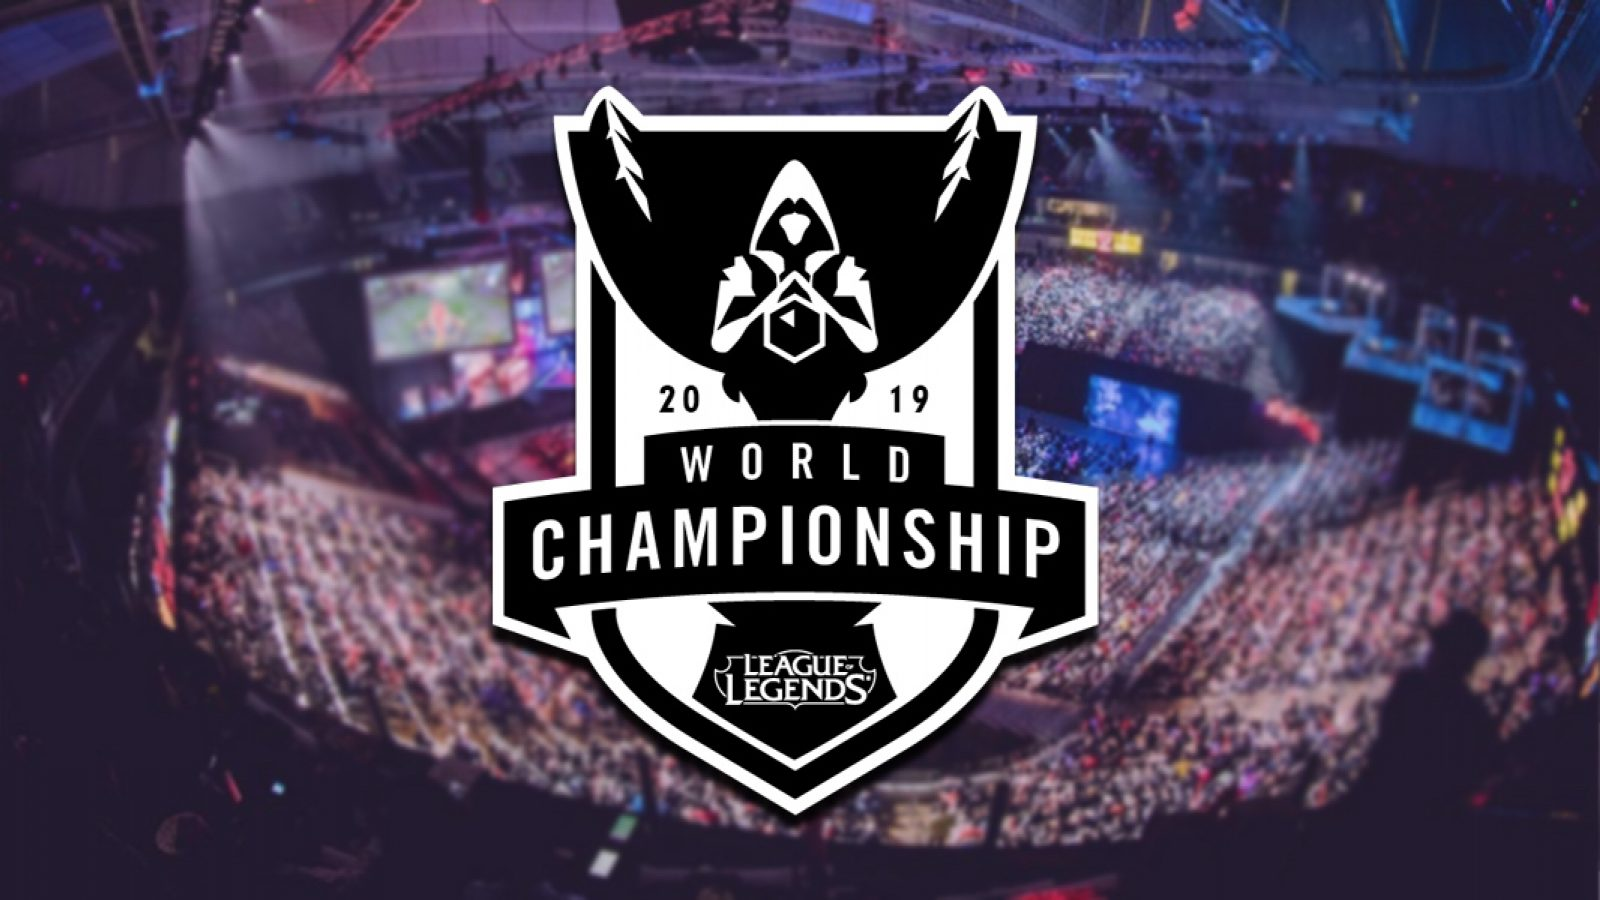 Aatrox, Akali, Orin, Sylas, Nerfs, Buffs, Changes, TSM, Legacy, Bjergsen, 100 Thieves, LEC. Fnatic, Reckless, League of Legends Championship Series, League of Legends World, LOL Esports Schedule, LOL Worlds 2019, C9 LOL, G2 LOL, LOL Championship 2019, League of Legends, Riot Games, Patch 9.19, MasonVeraPaine, Mason Paine, MasonVeraPaine.com, Unabridged Millennial, Millennial, WGNRadio.com, MVP.Show, Chicago, Illinois, WGN Radio, Lifestyle, Team MVP, LCK, LPL, LMS, VCS, LCS, Prize Pool, Esports, LOL Esports, LOL LCS, LOL LPL, LOL LMS, LOL VCS, LOL LEC